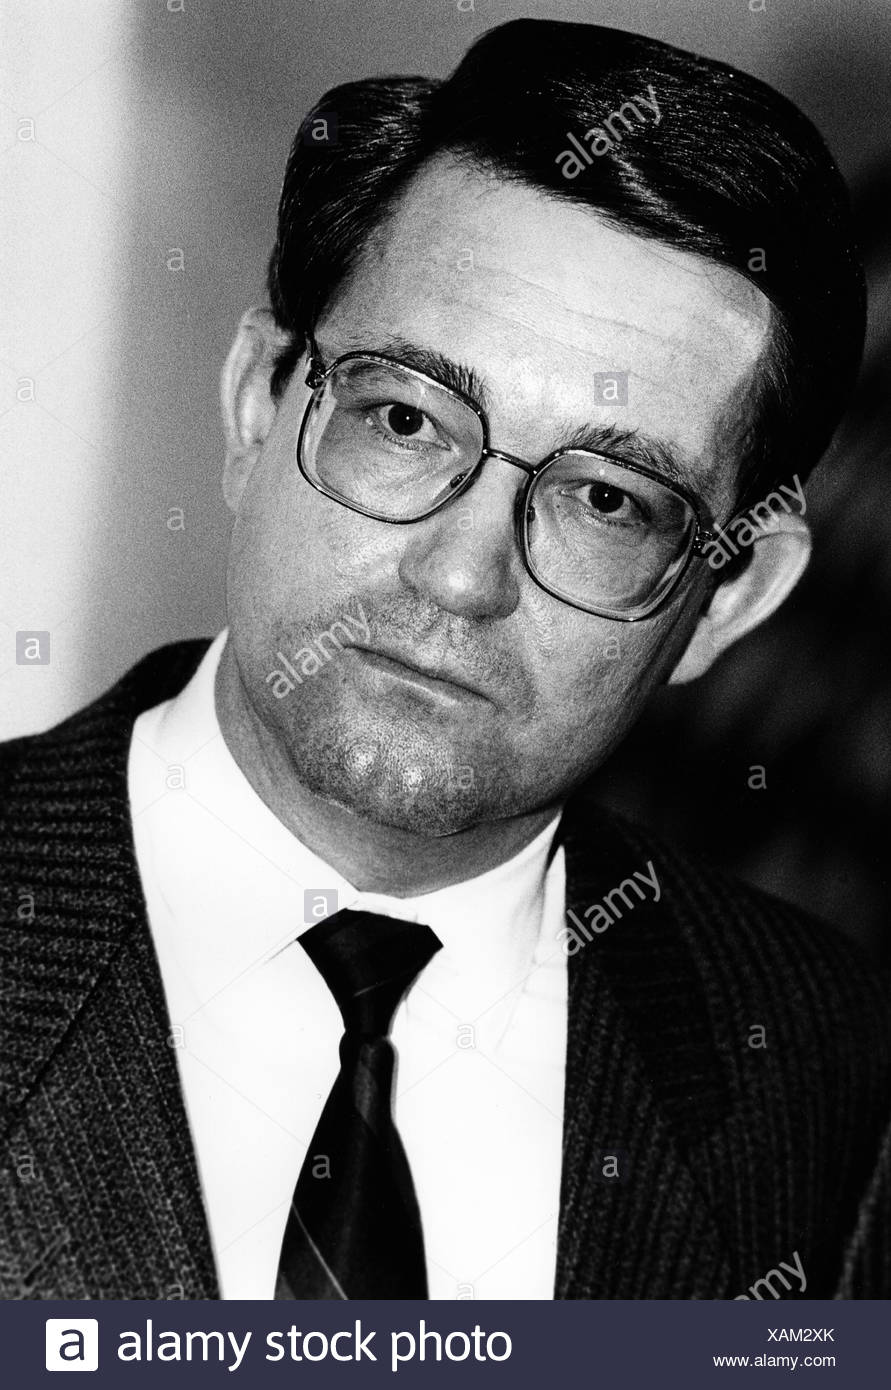 Spranger, Carl-Dieter, * 28.3.1939, German politician (CDU), Parliamentary State Secretary at the German Federal Ministry of the Interior, portrait, 1980s, Additional-Rights-Clearances-NA - Stock Image